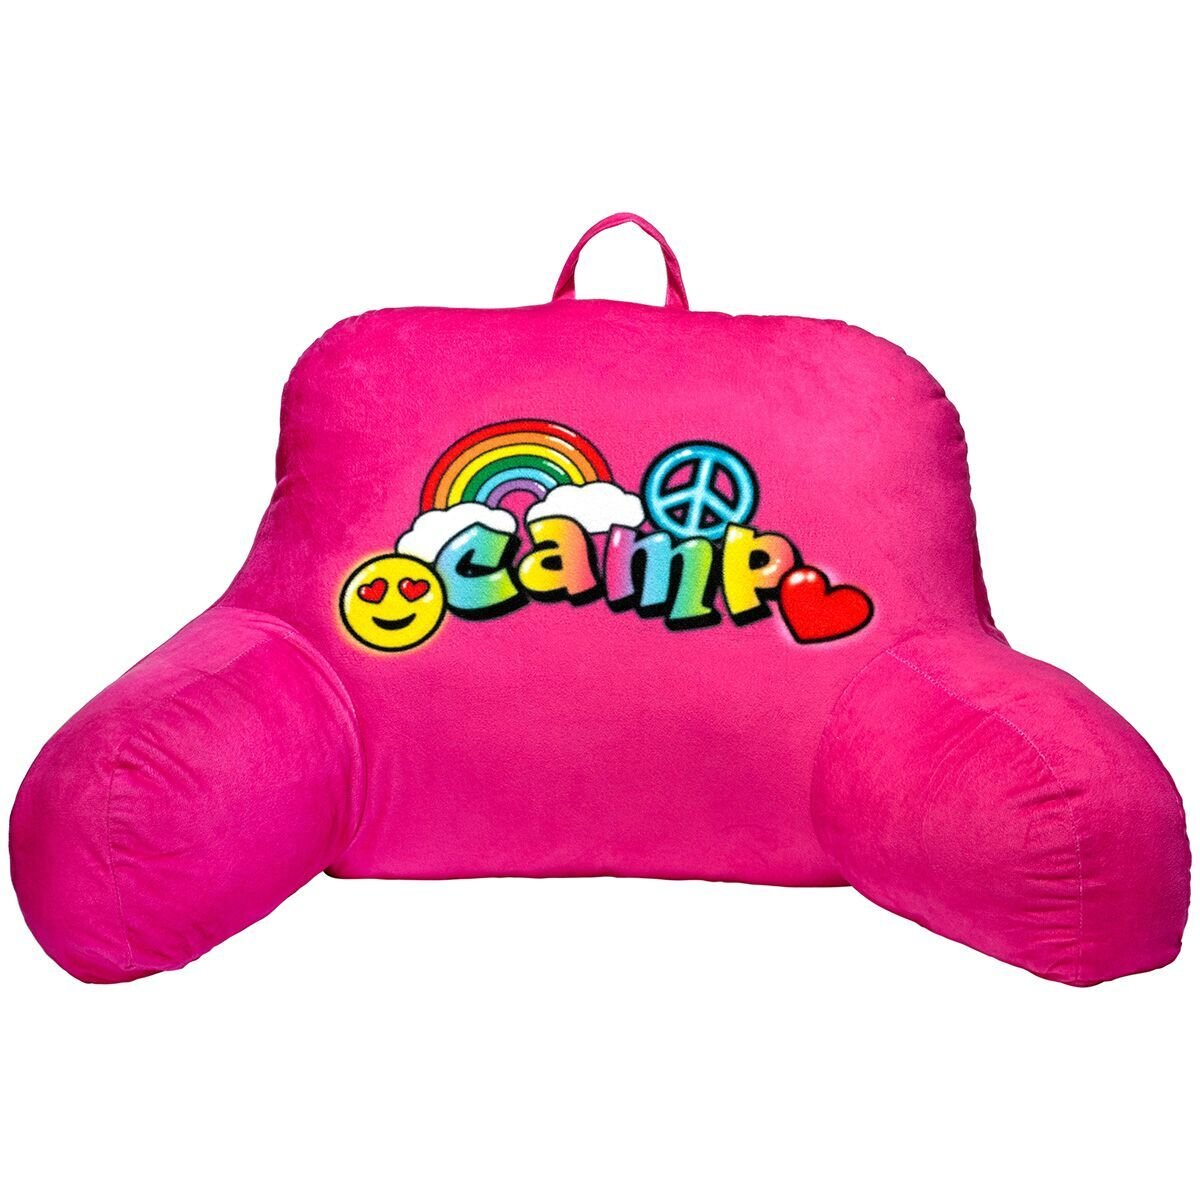 3C4G Airbrush Camp Bed Rest Pillow, Pink by 3C4G